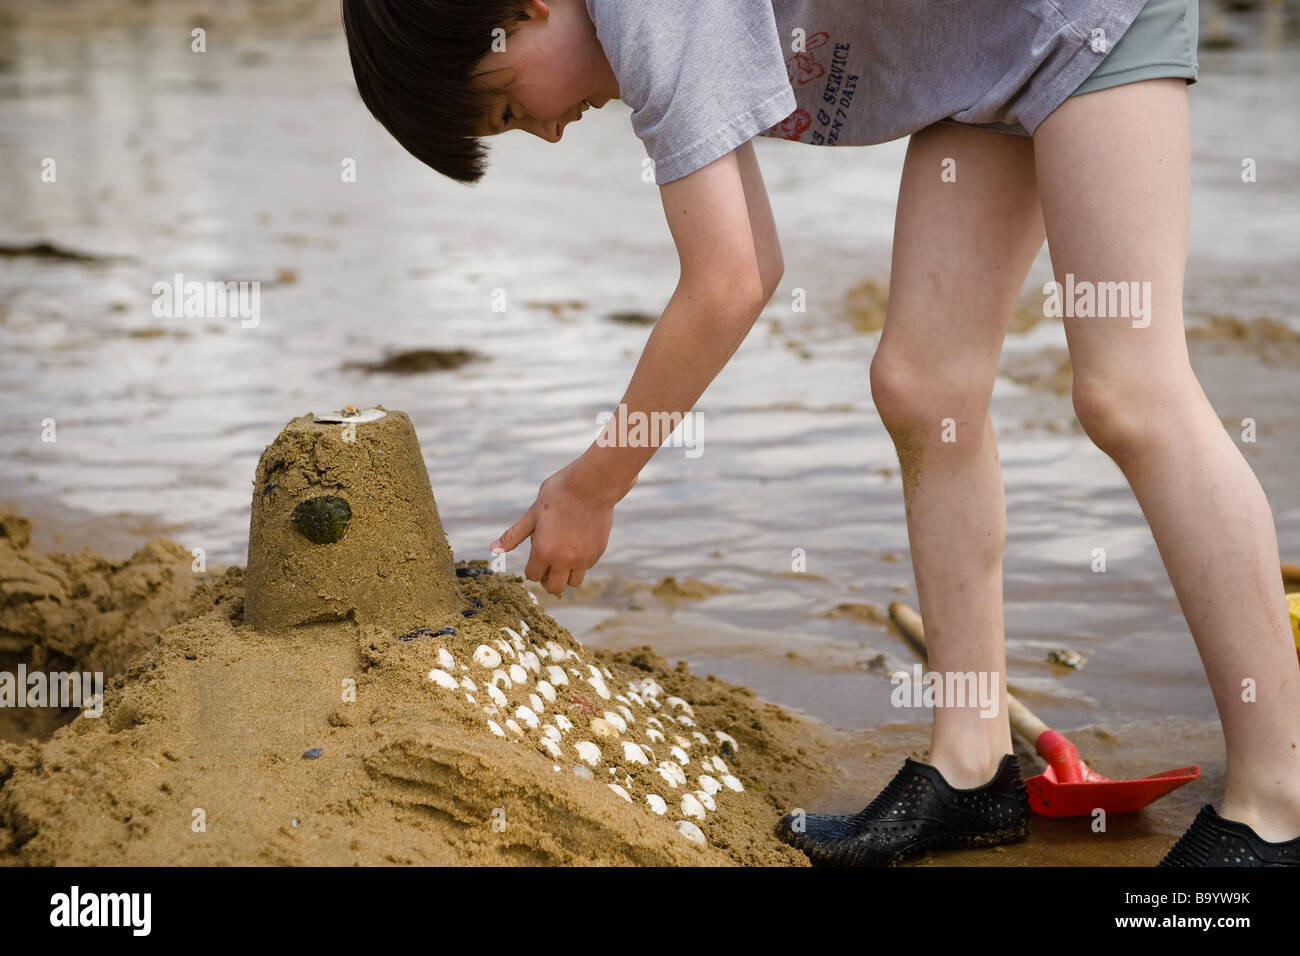 A pre-teen boy bends over to decorate his sand castle with white shells with a red shovel and reflecting water in - Stock Image